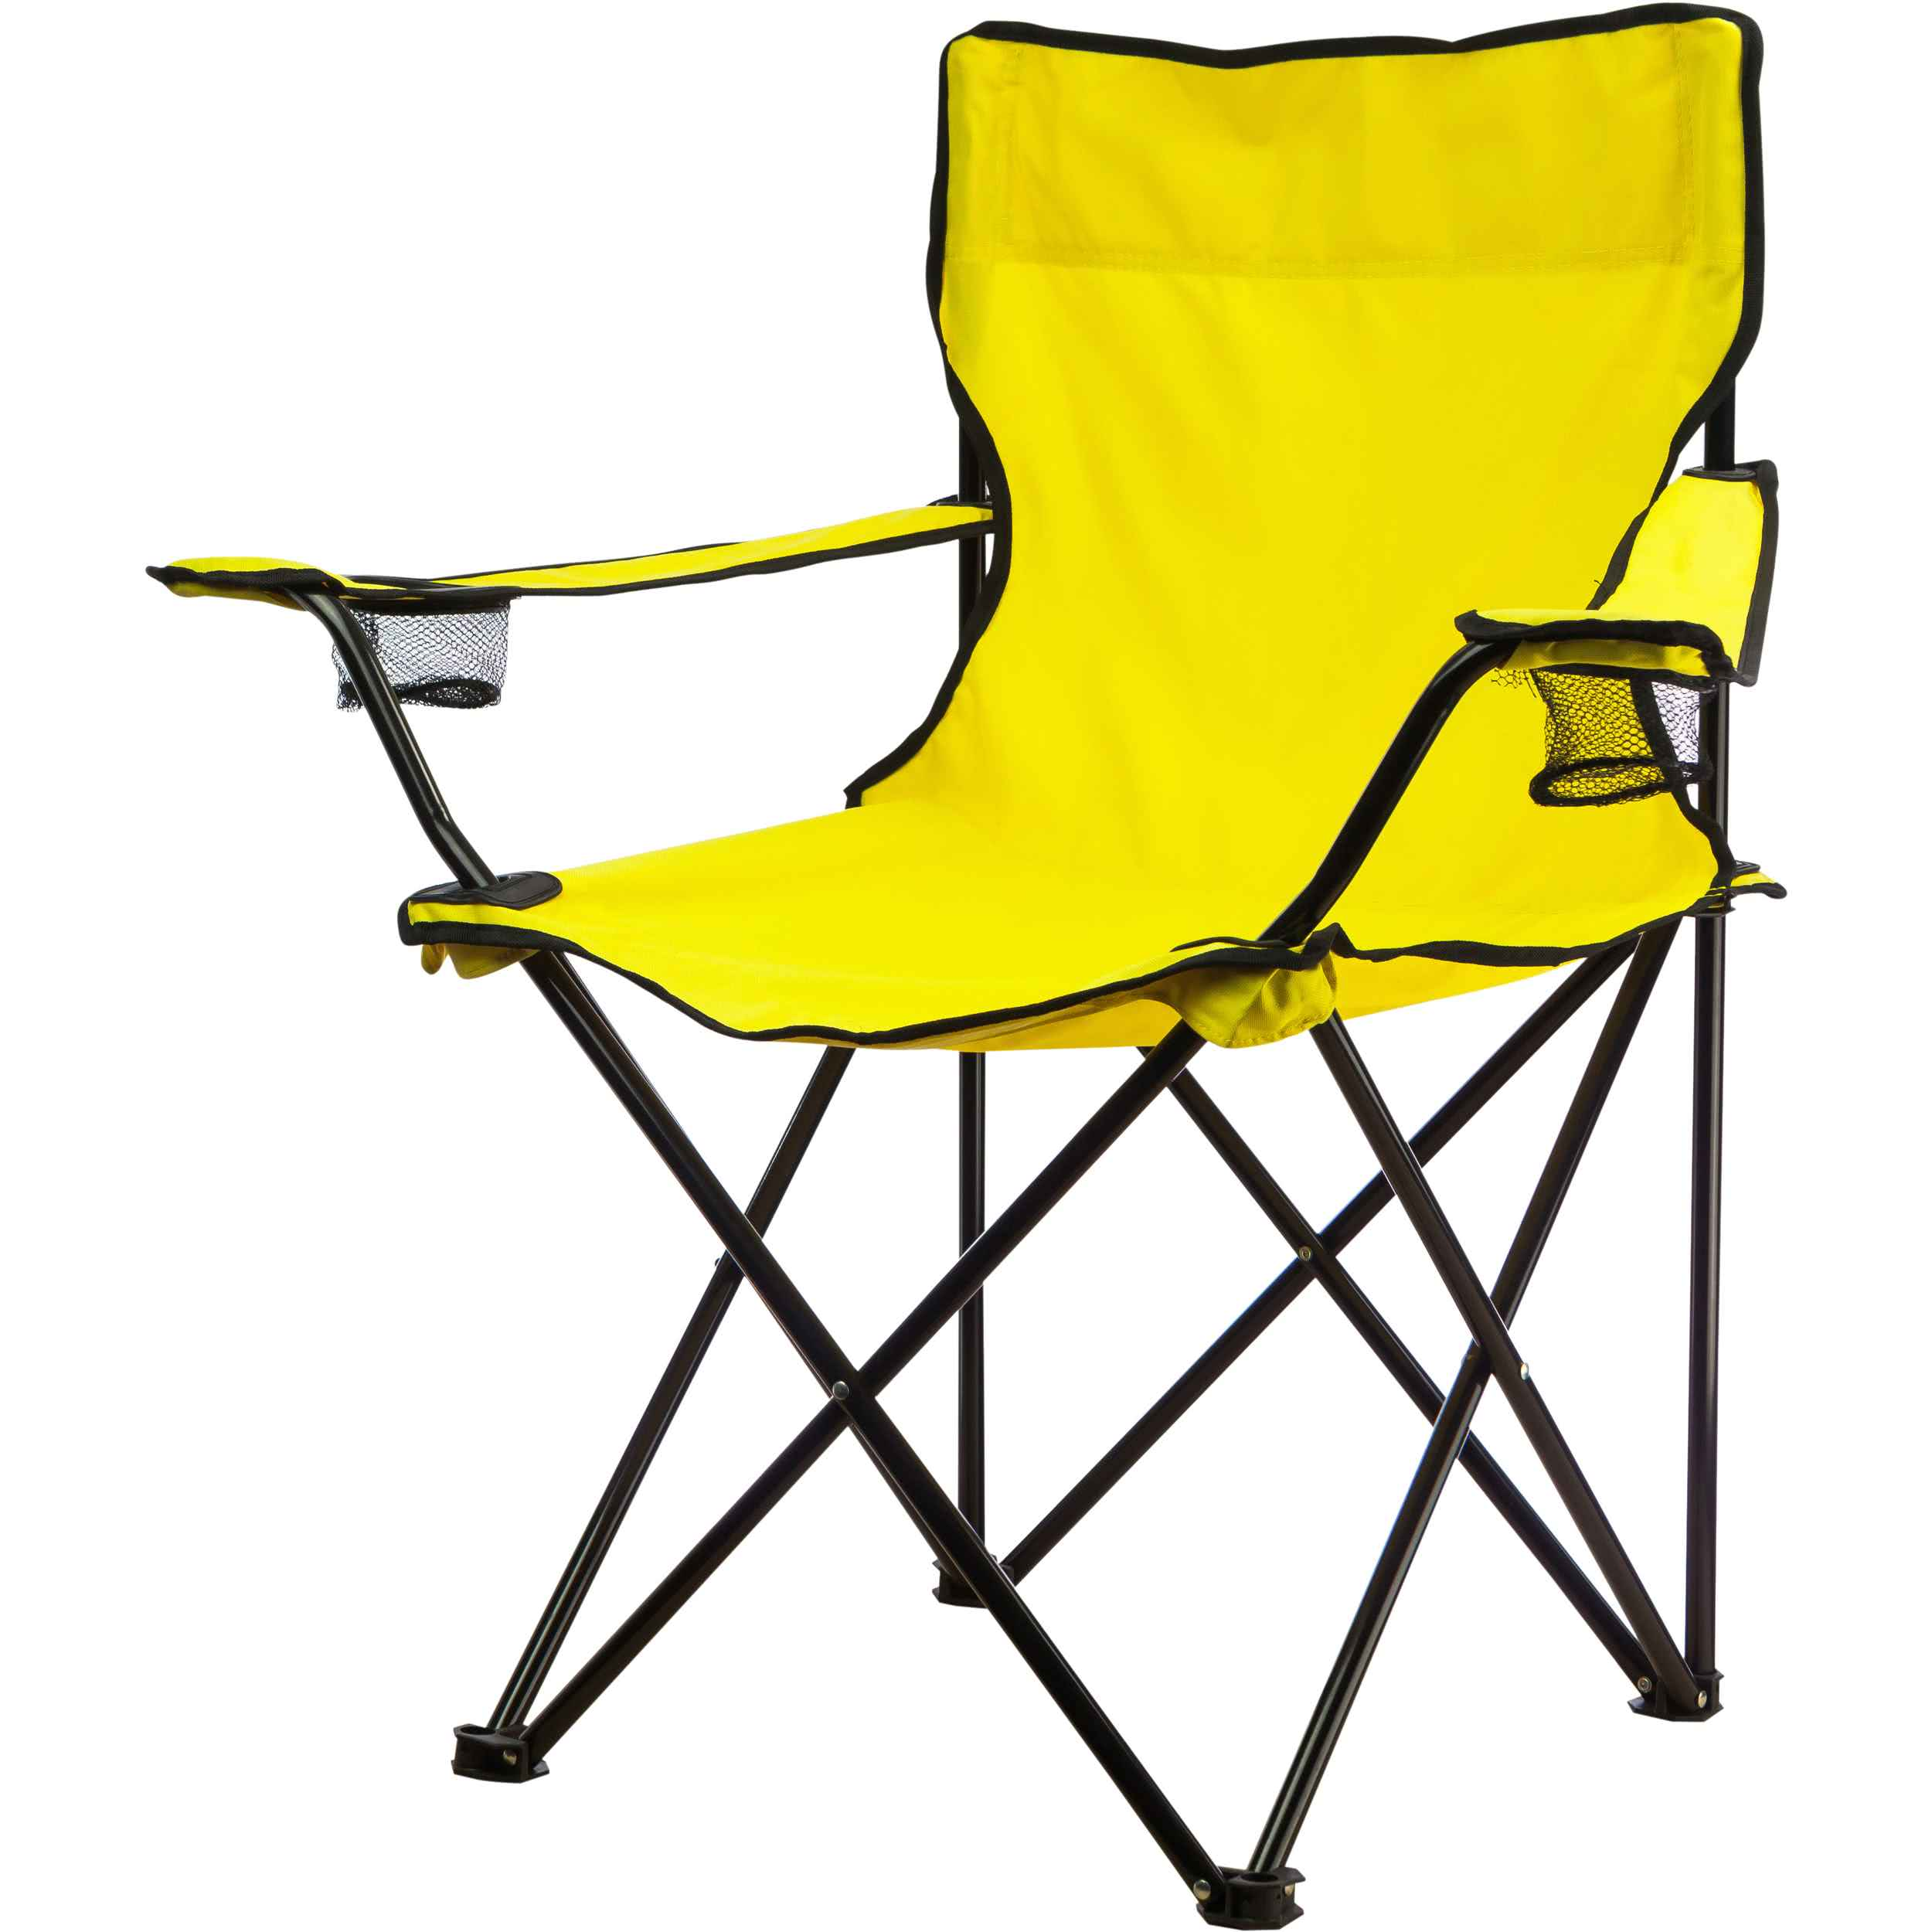 Camping chair clipart png black and white download Folding Chair with Carrying Bag png black and white download